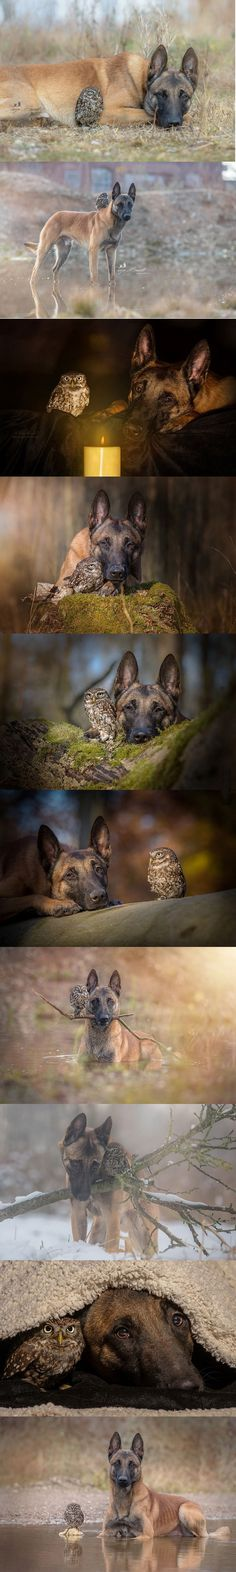 Credit to the photographer Tanja Brandt. https://www.facebook.com/TierfotografieTanjaBrandt More of them: http://imgur.com/gallery/D63DkfL